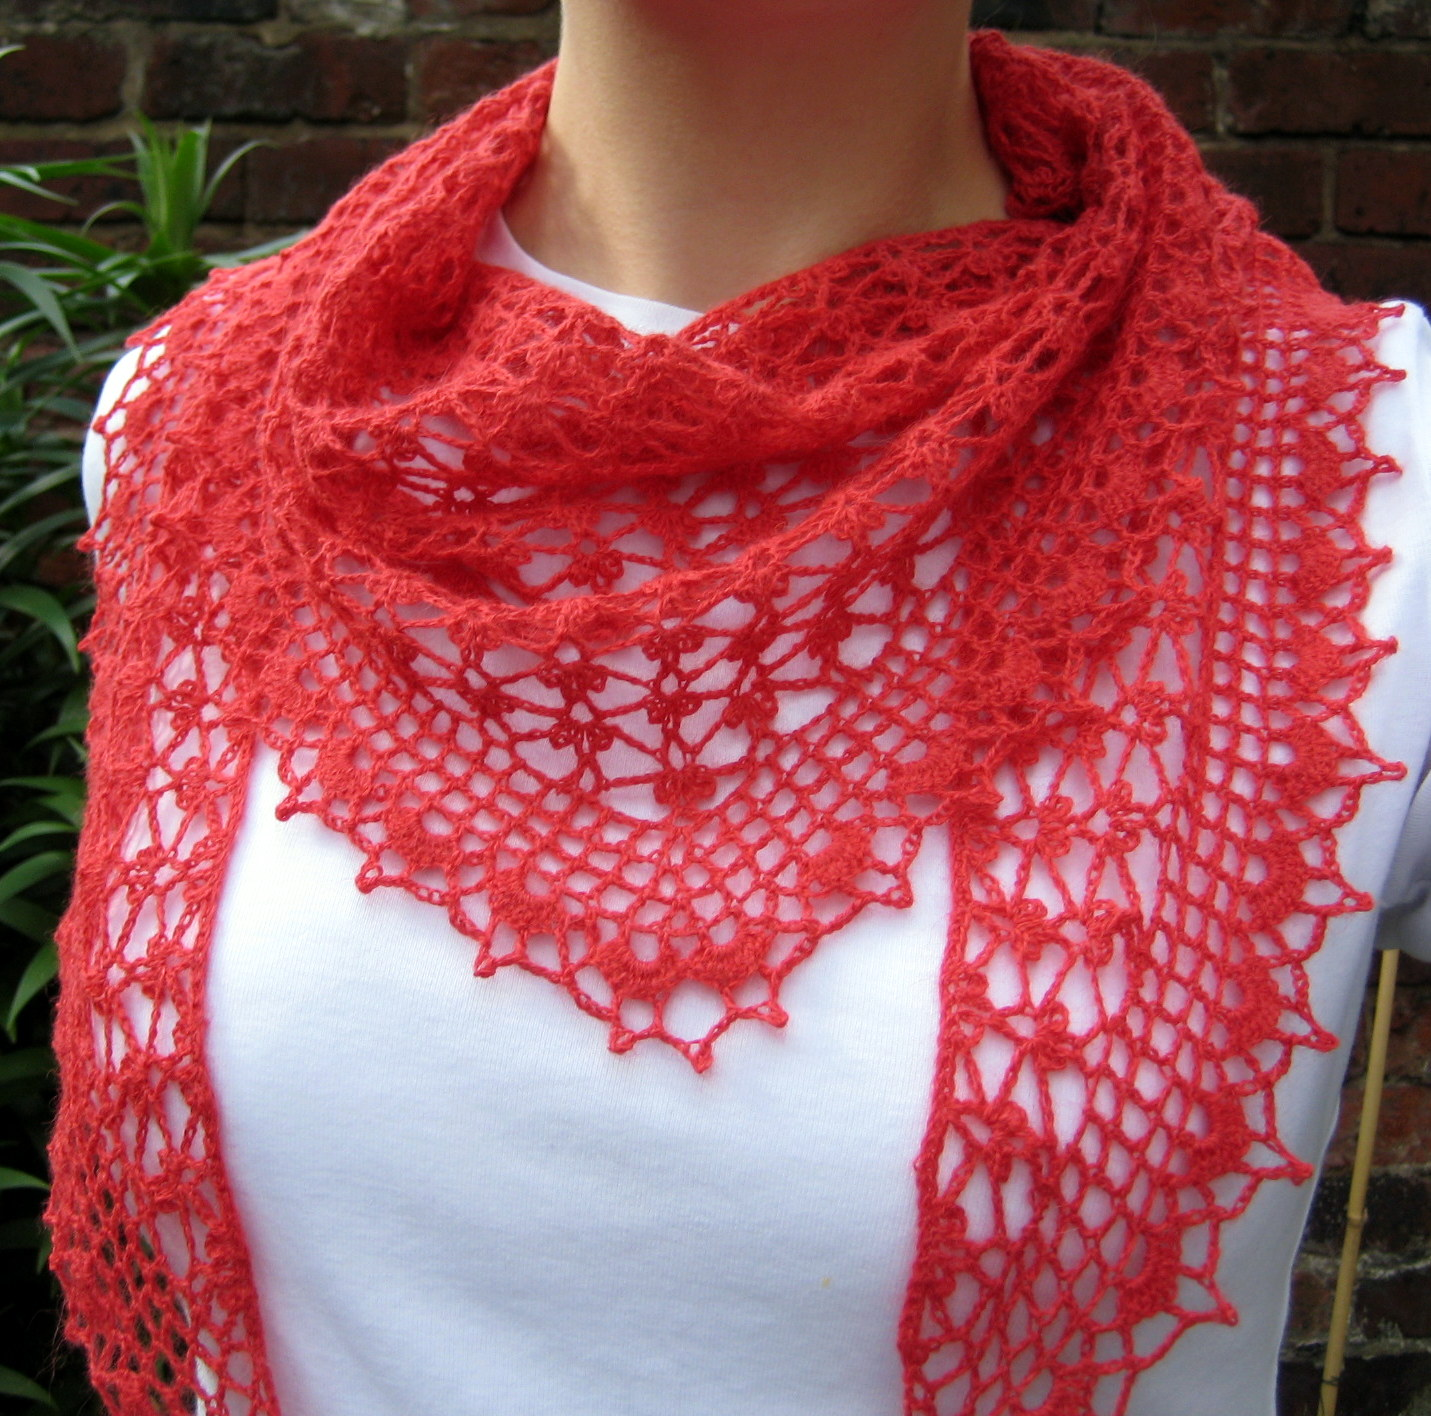 Free Crochet Patterns For Lightweight Scarves : Summer Sprigs Lace Scarf Make My Day Creative